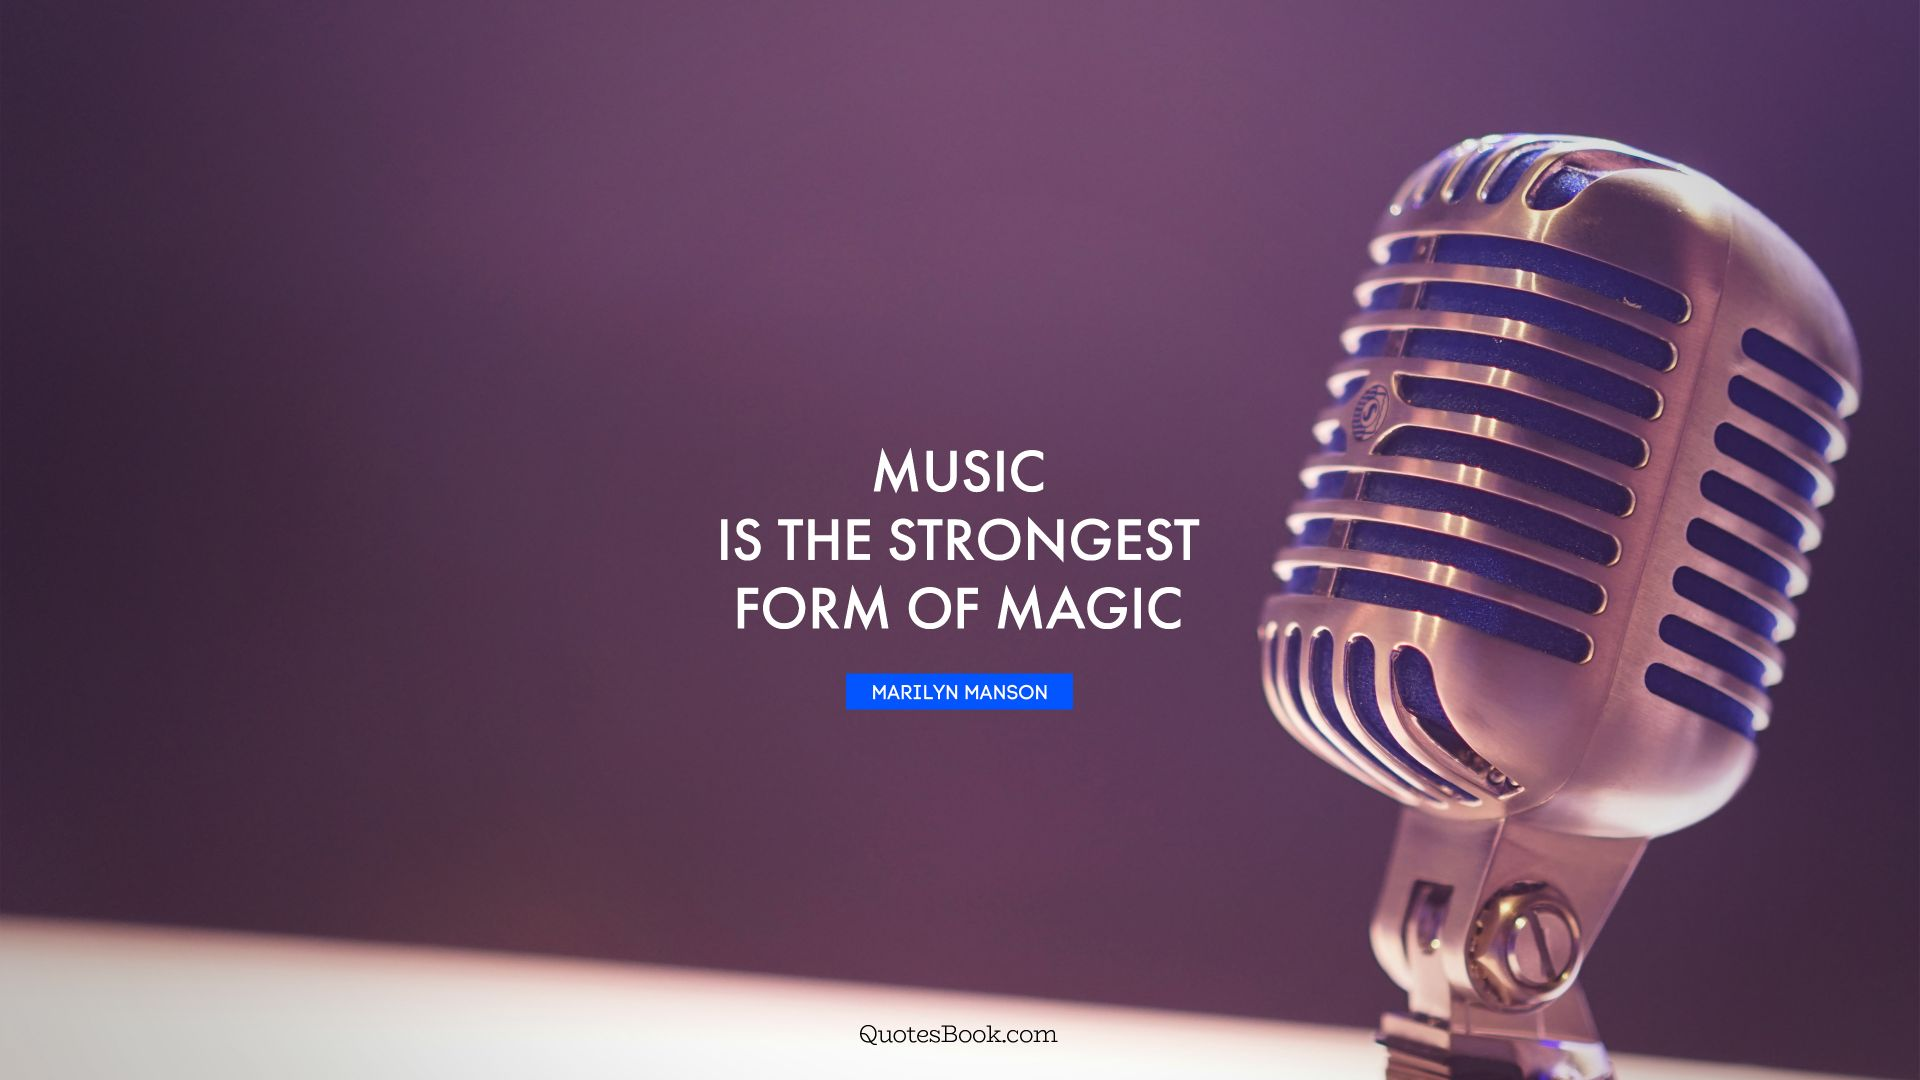 Music is the strongest form of magic. - Quote by Marilyn Manson